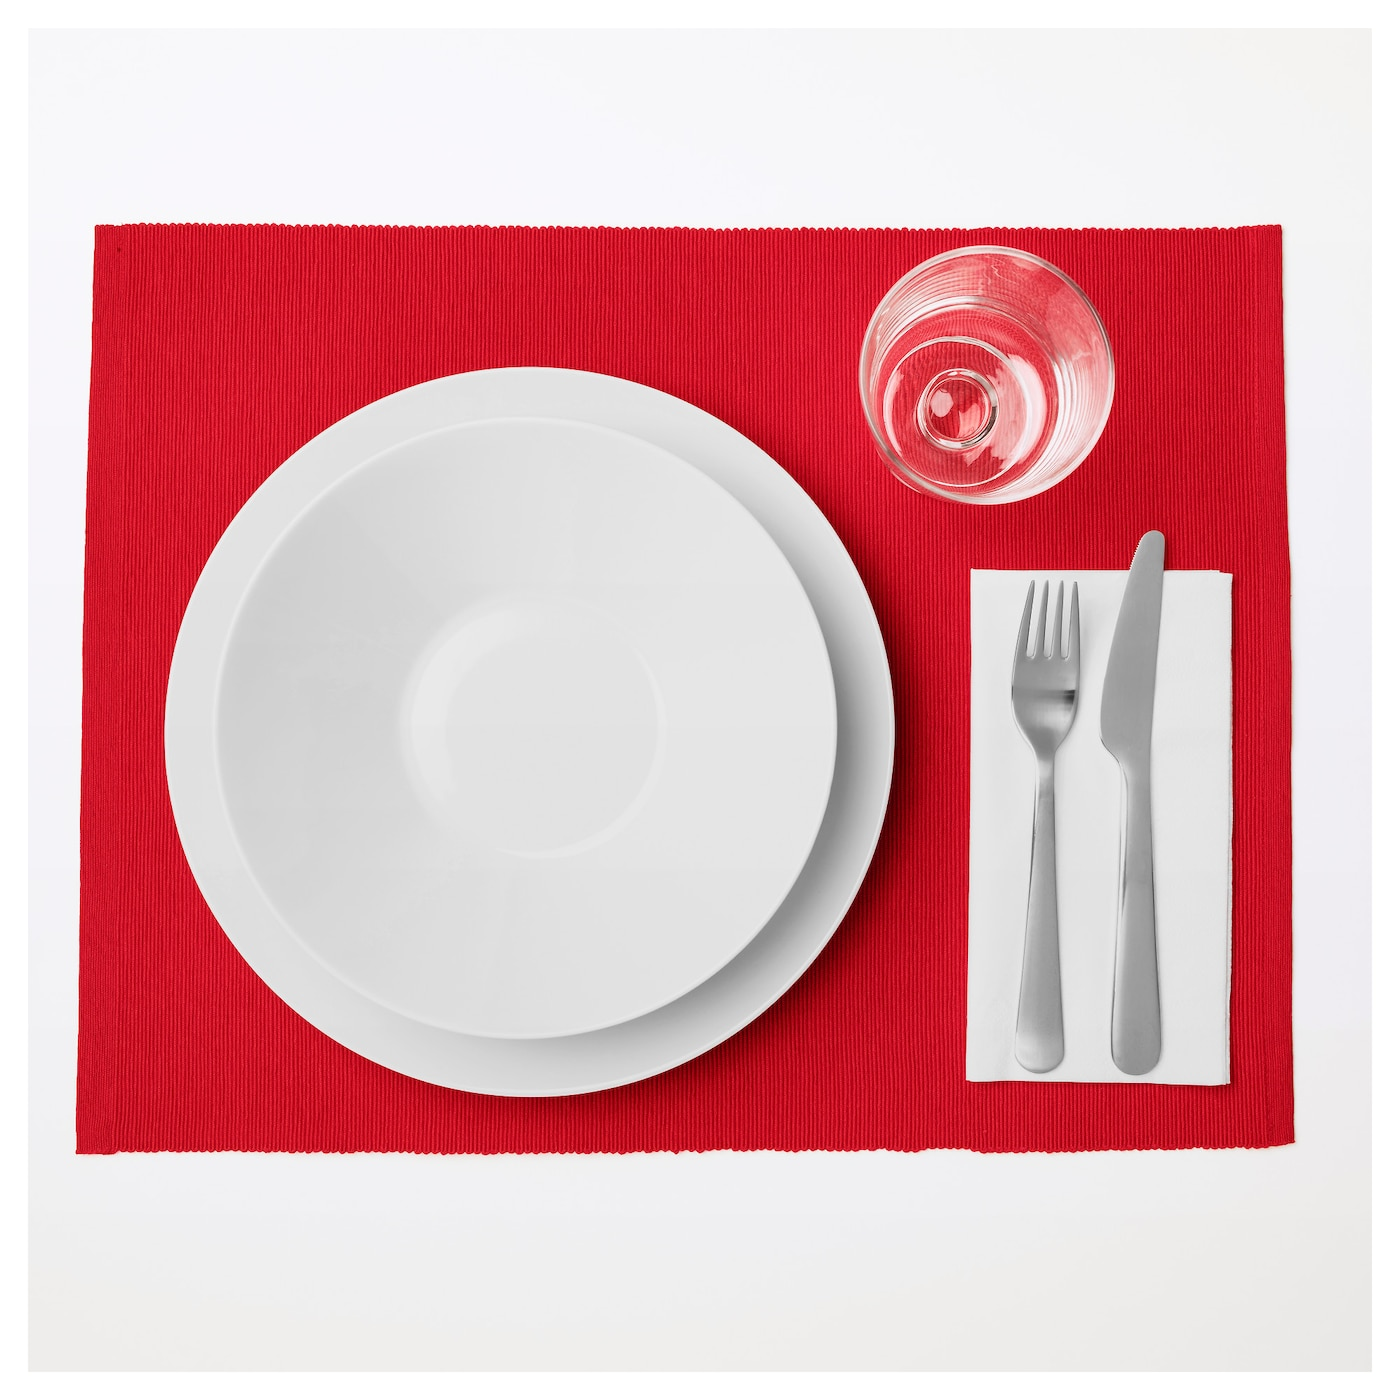 IKEA MÄRIT place mat Protects the table top surface and reduces noise from plates and cutlery.